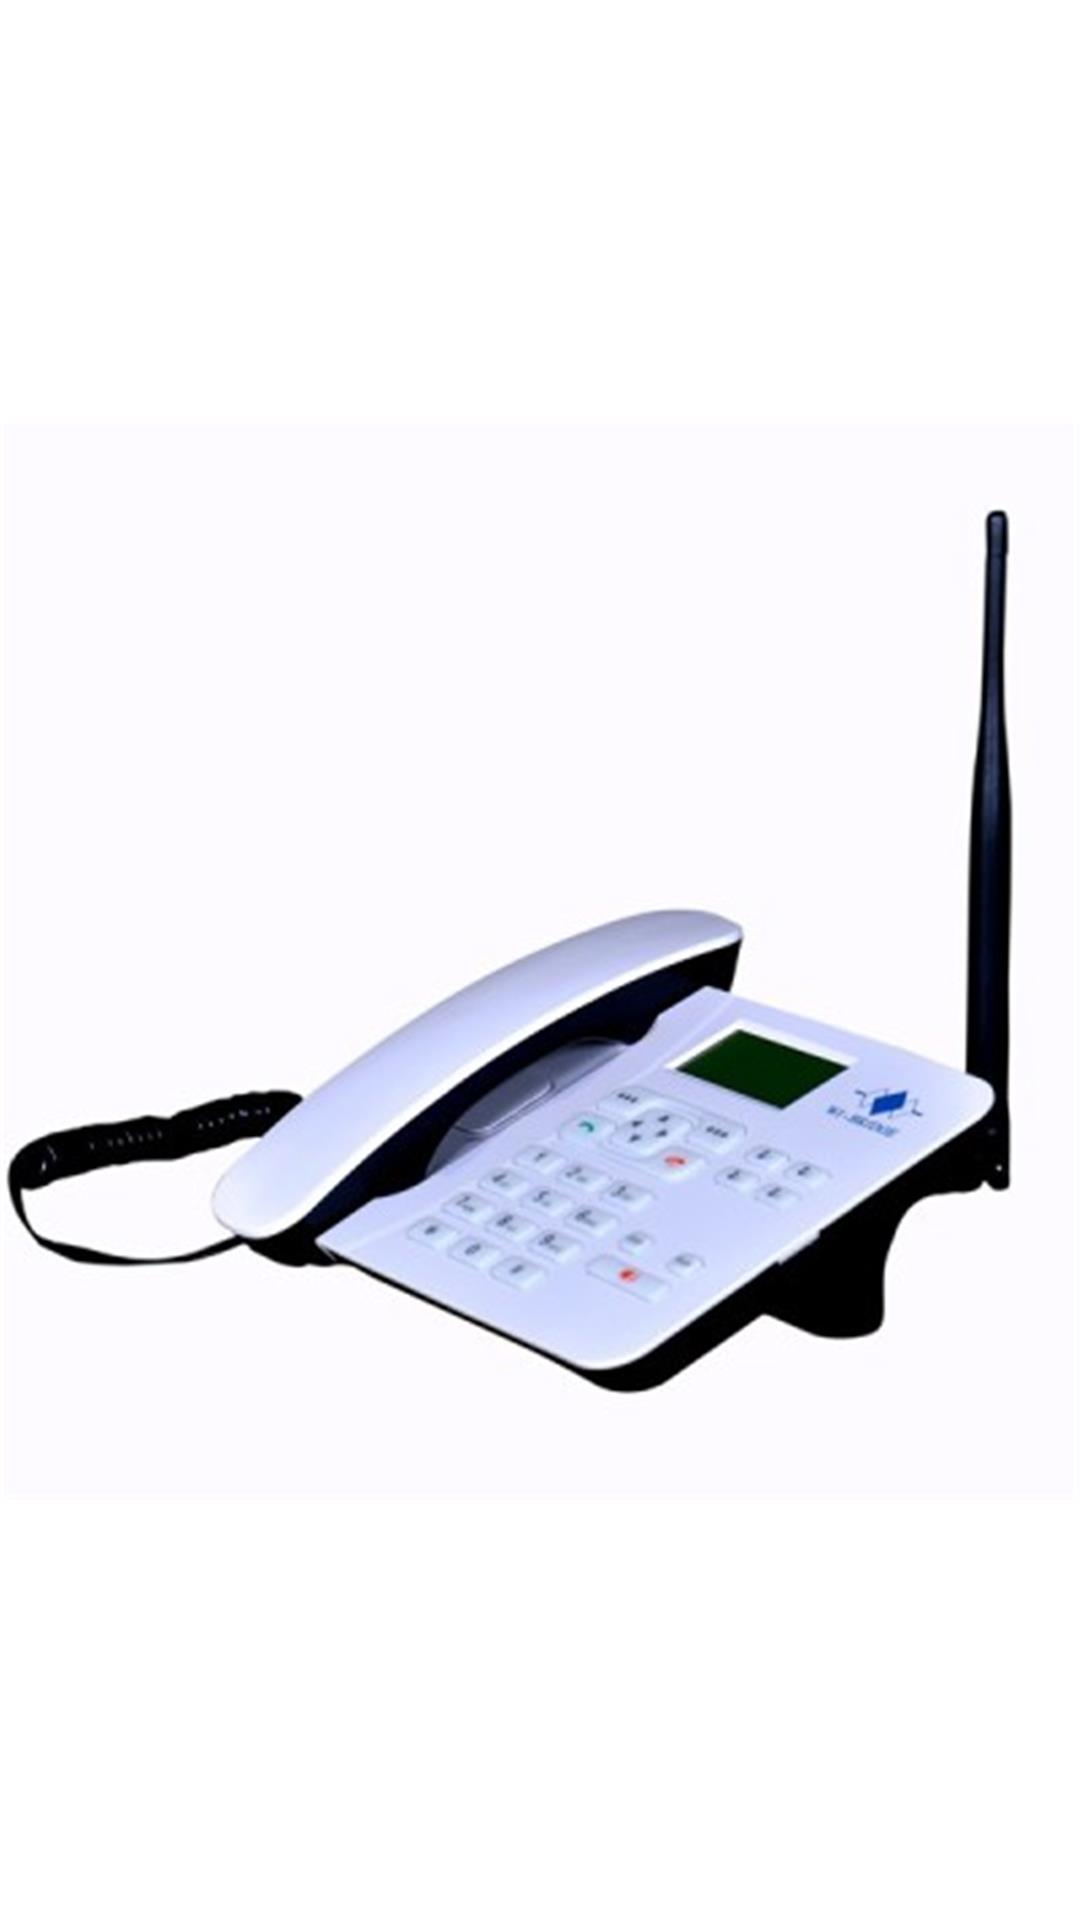 WI-BRIDGE GSM Fixed Wireless Phone